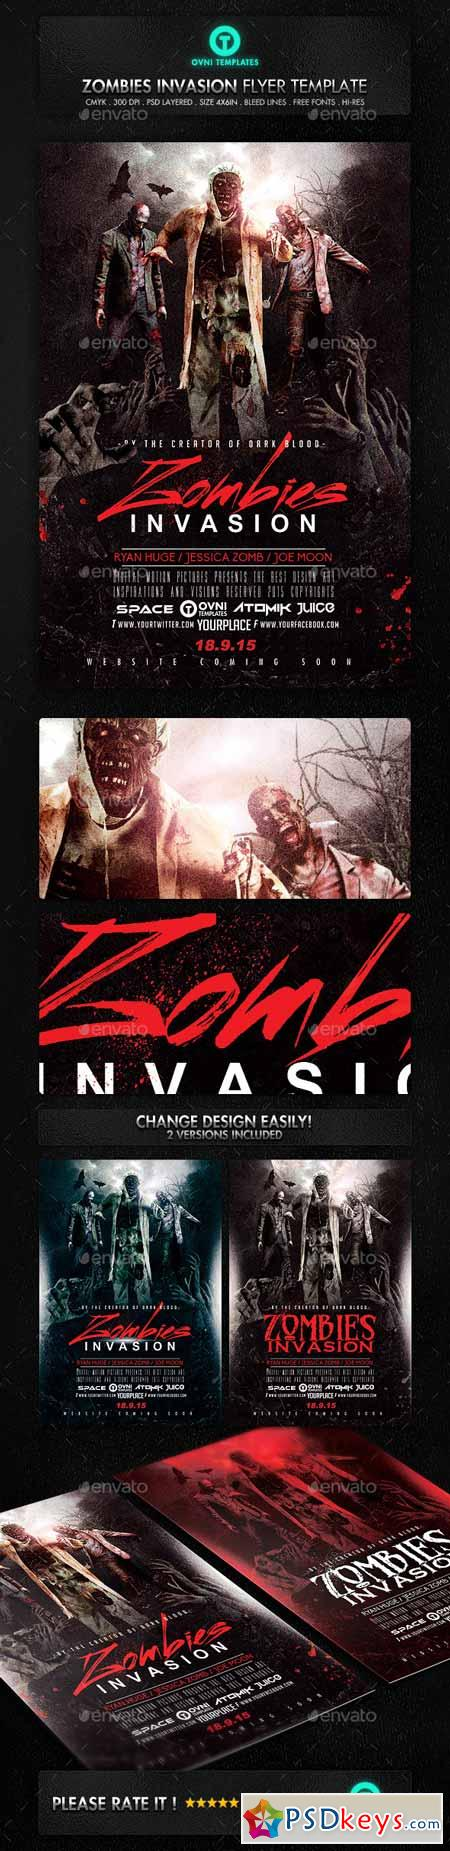 Zombies Dead Invastion Flyer Template 13181480